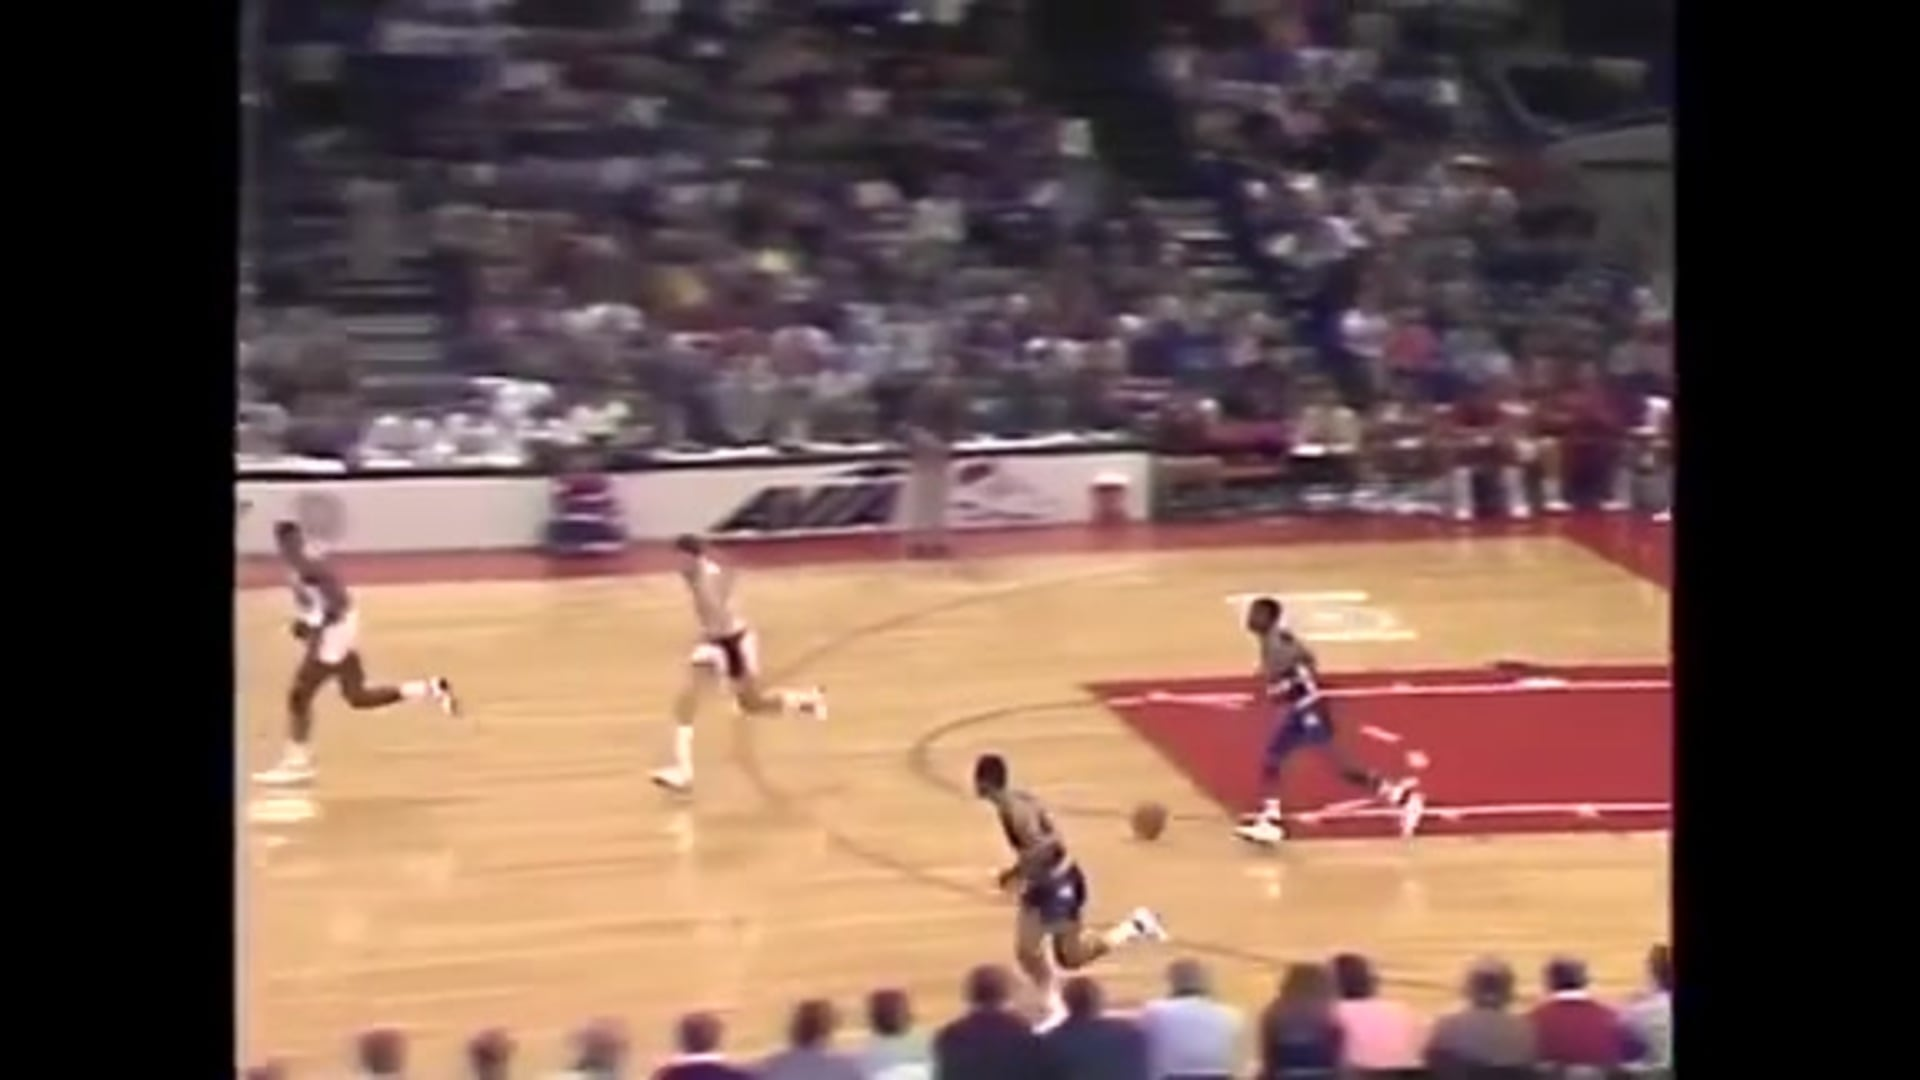 Highlights of the Late, Great Jerome Kersey